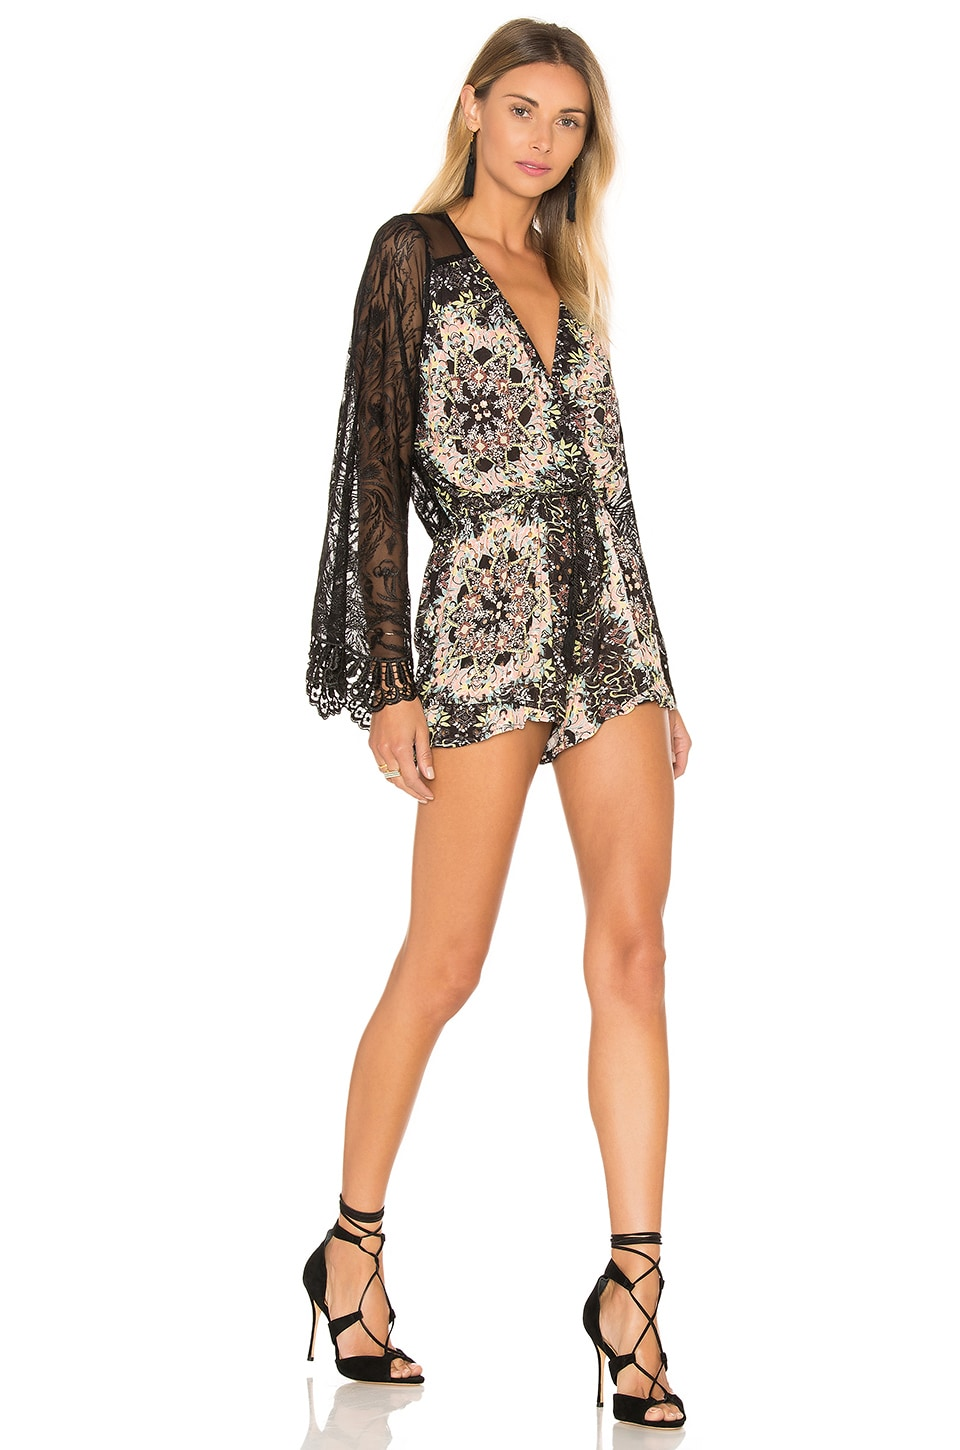 sky Yamir Romper in Black